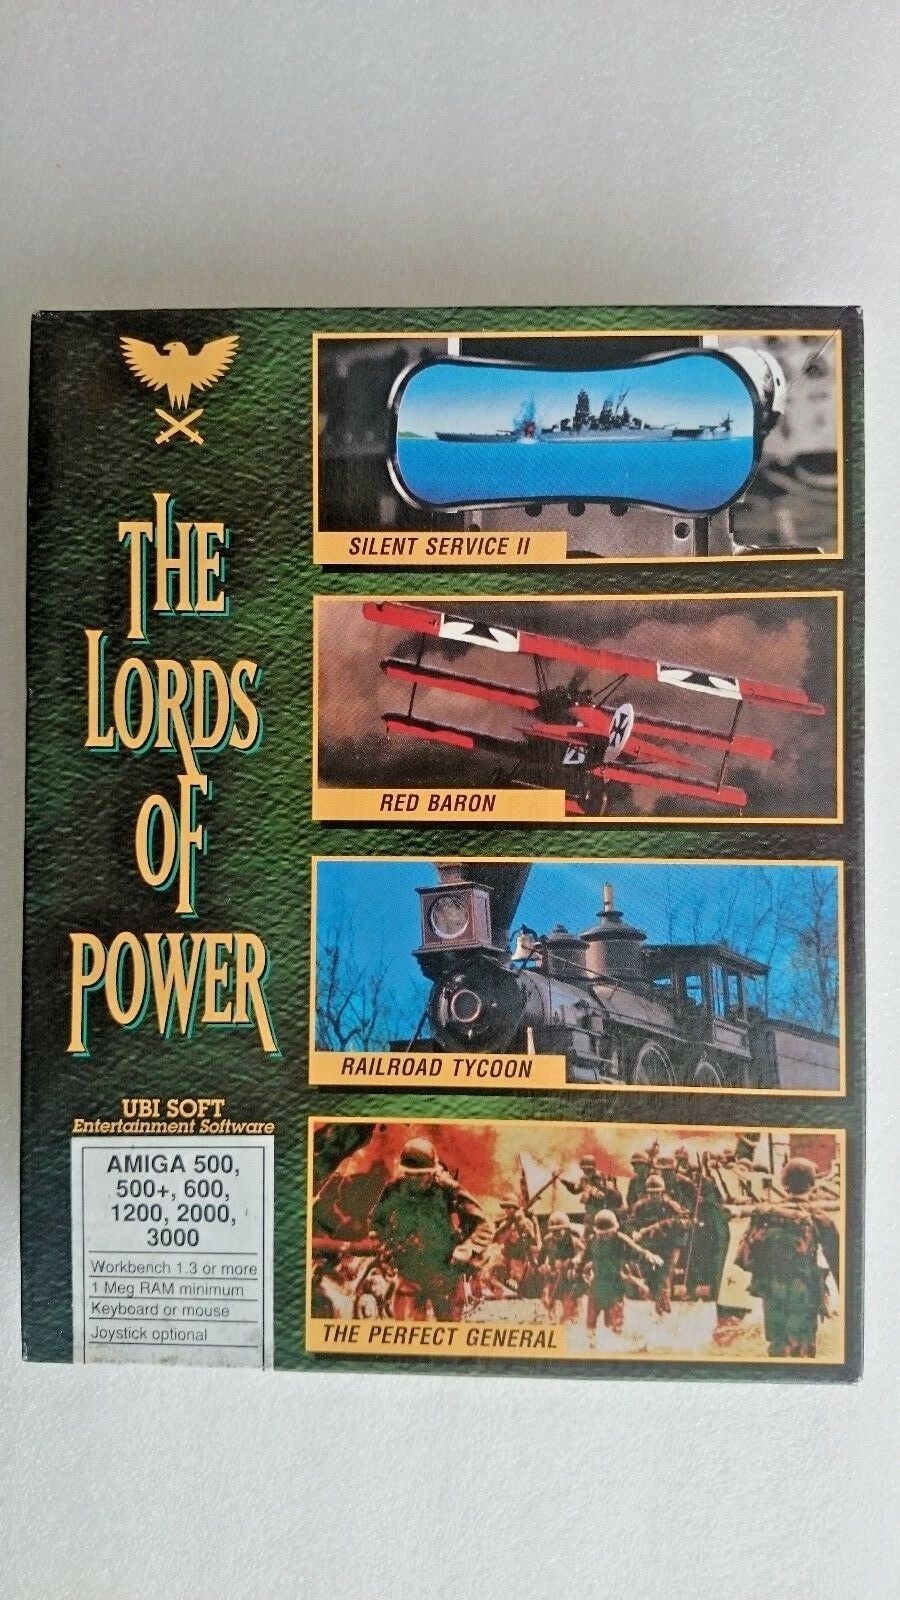 The Lords of Power Commodore Amiga Games - Big Box Edition